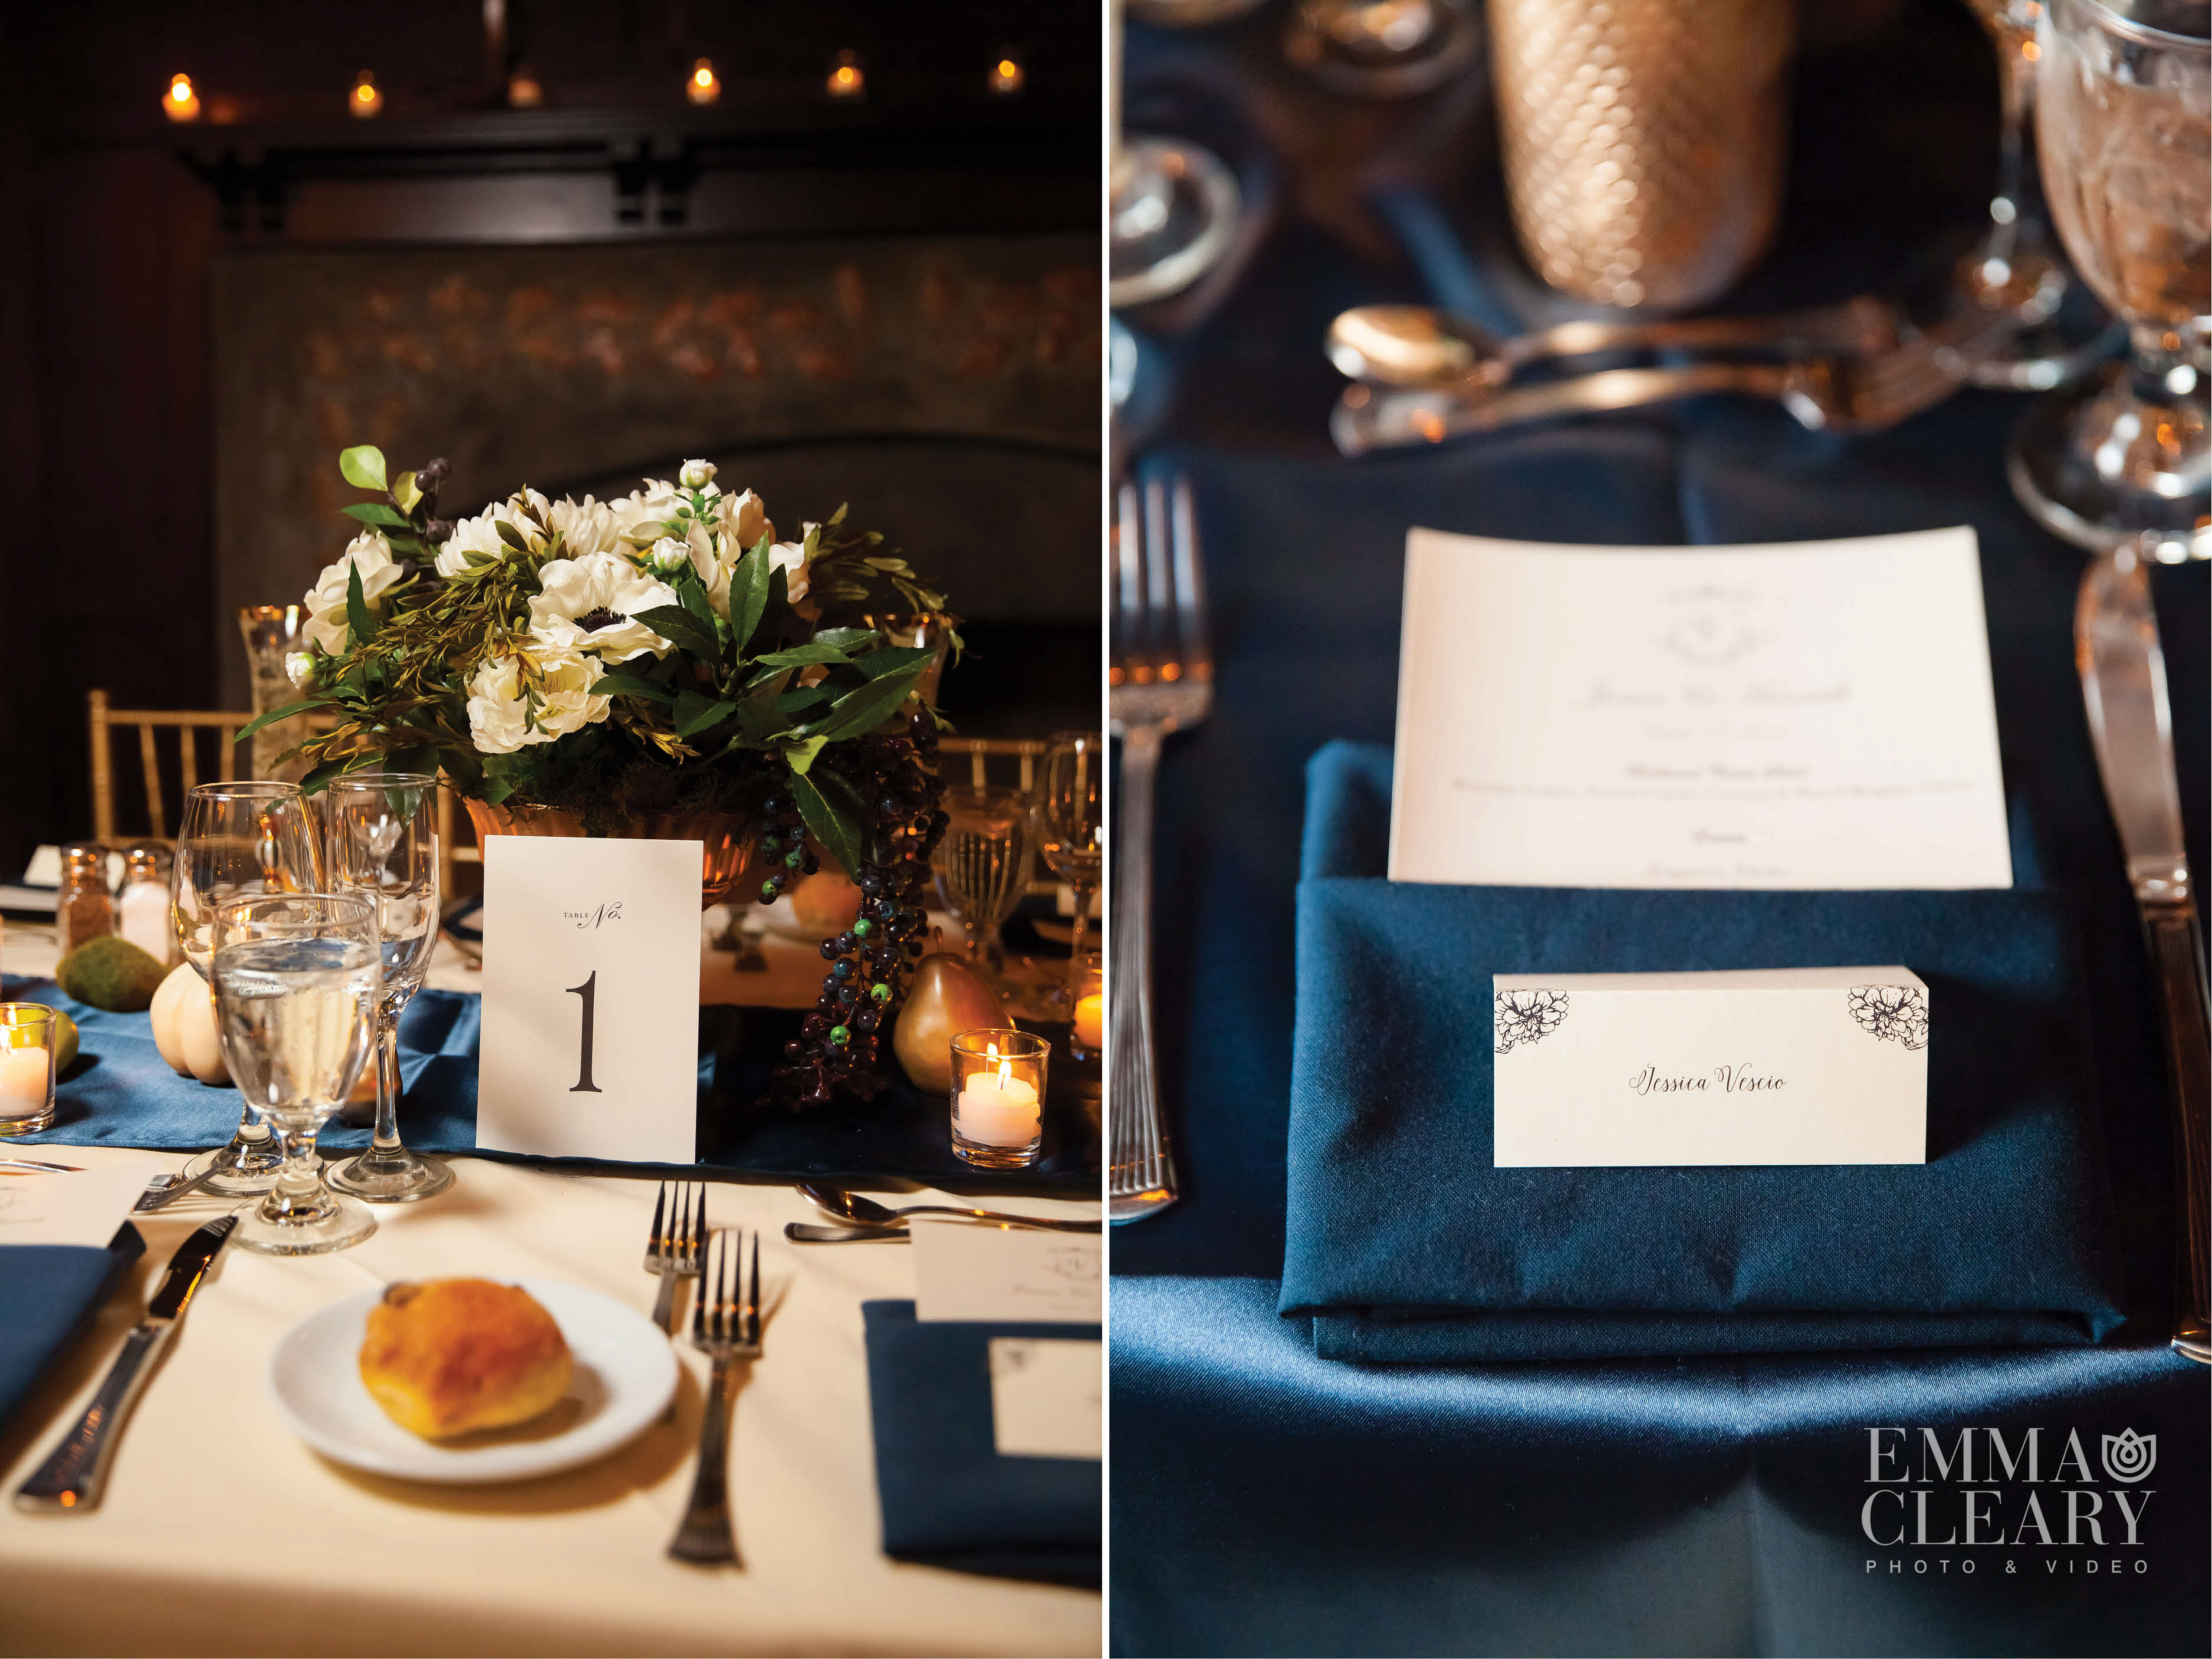 emma_cleary_photography-hotel-du-village-wedding18